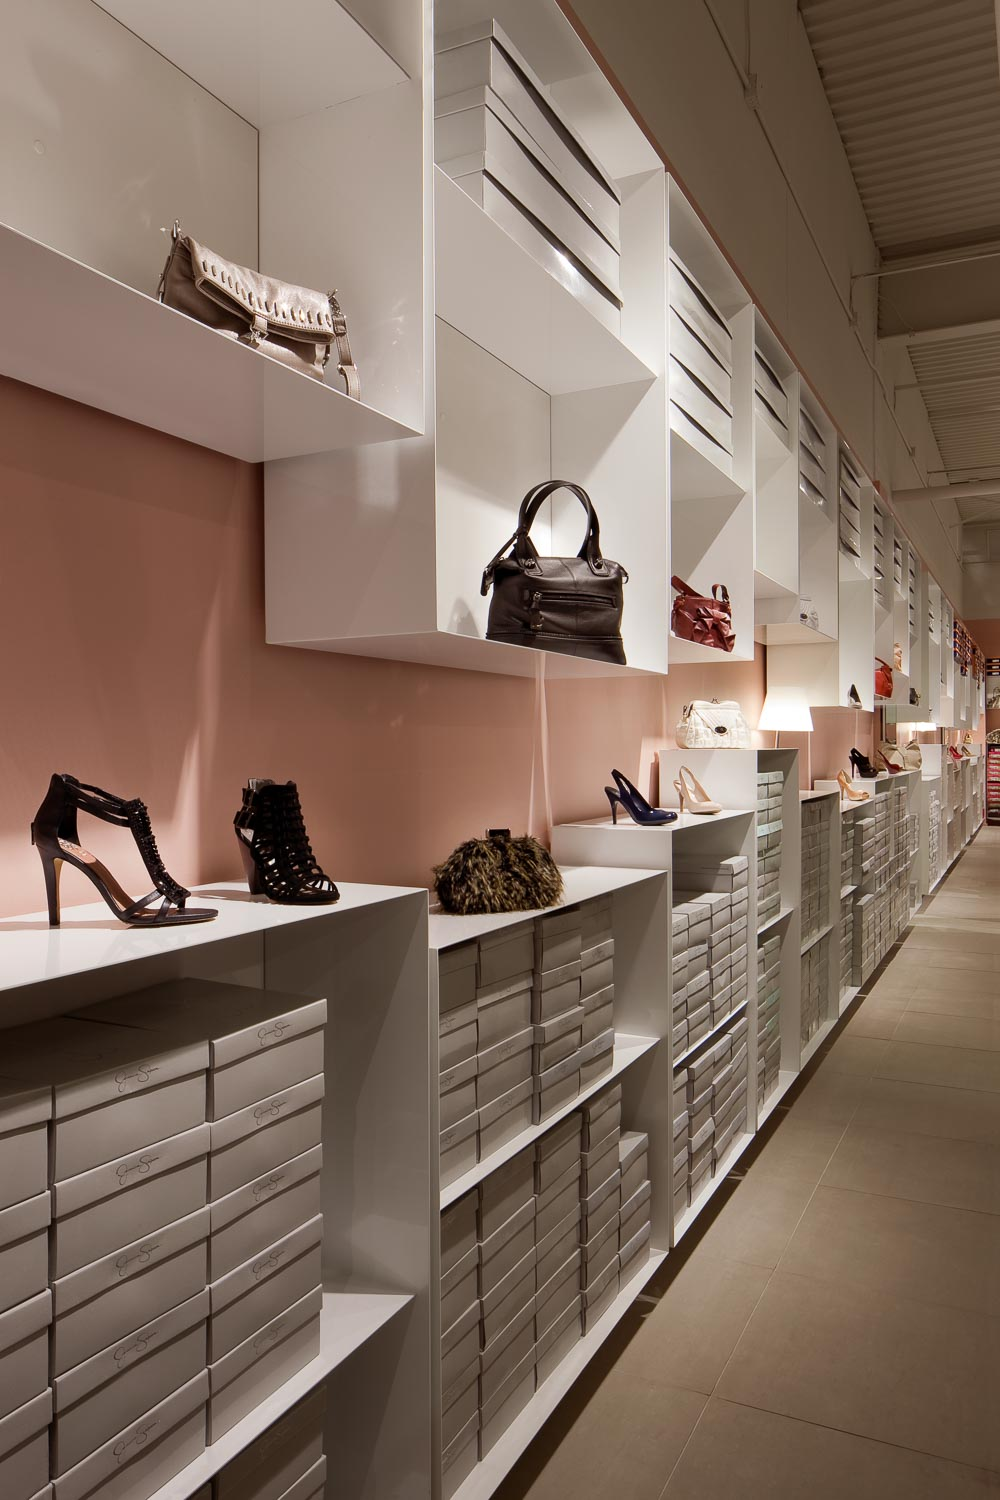 Vince Camuto Outlet Store Design 01.jpg